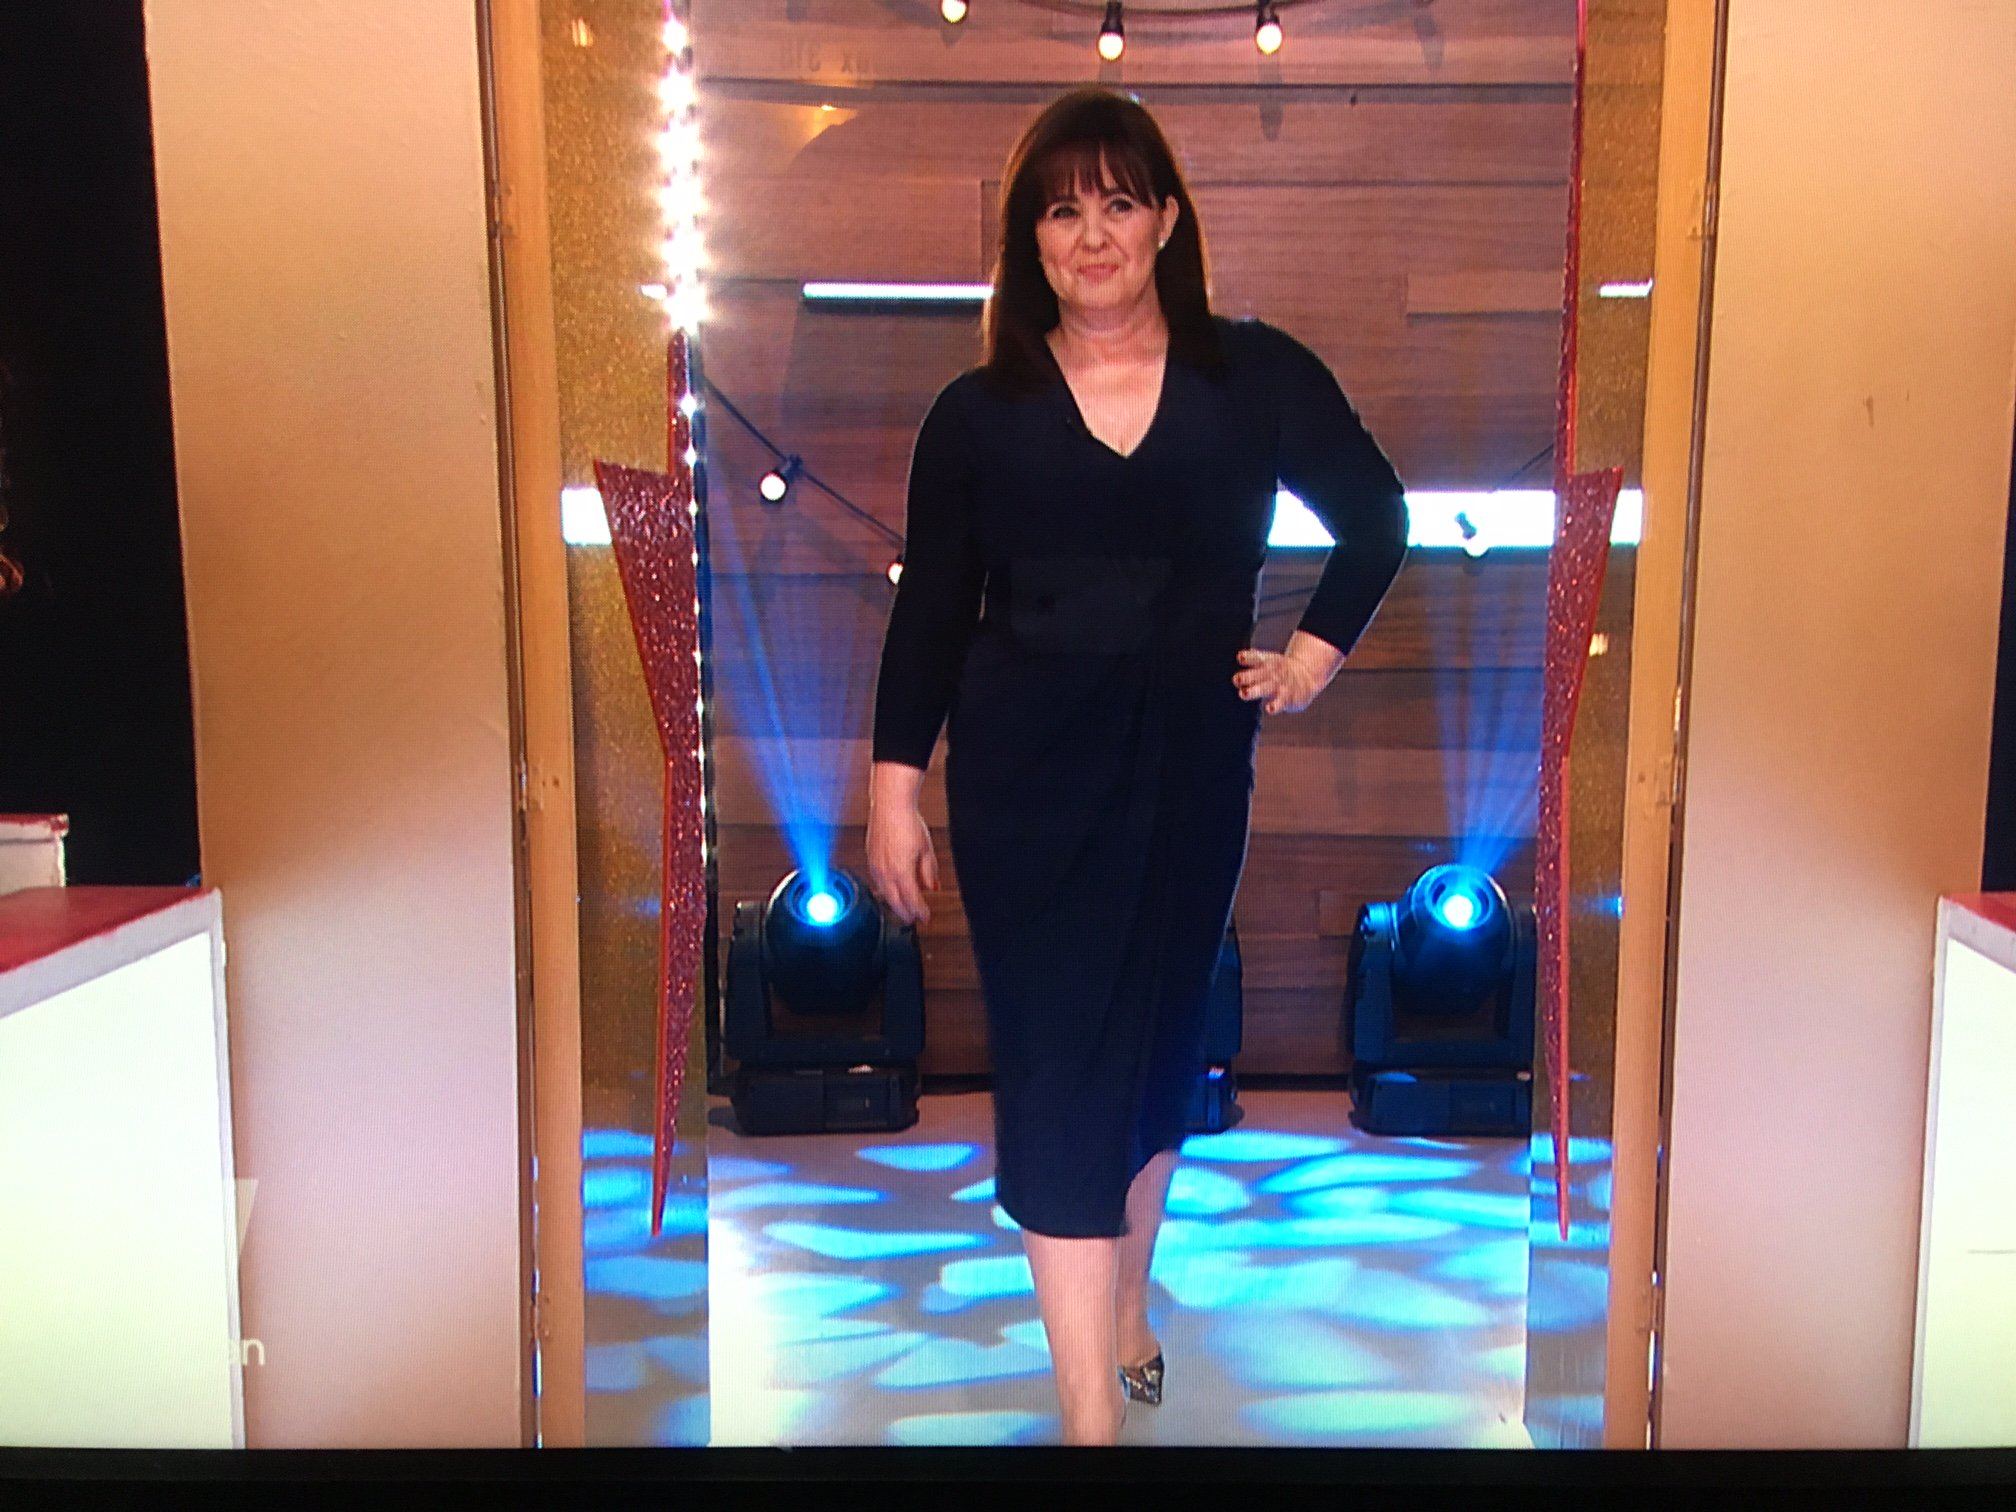 RT @loosewomen: OOOoooooh.... What do you think of our @NolanColeen's new look?! https://t.co/aDVFCMGzV2